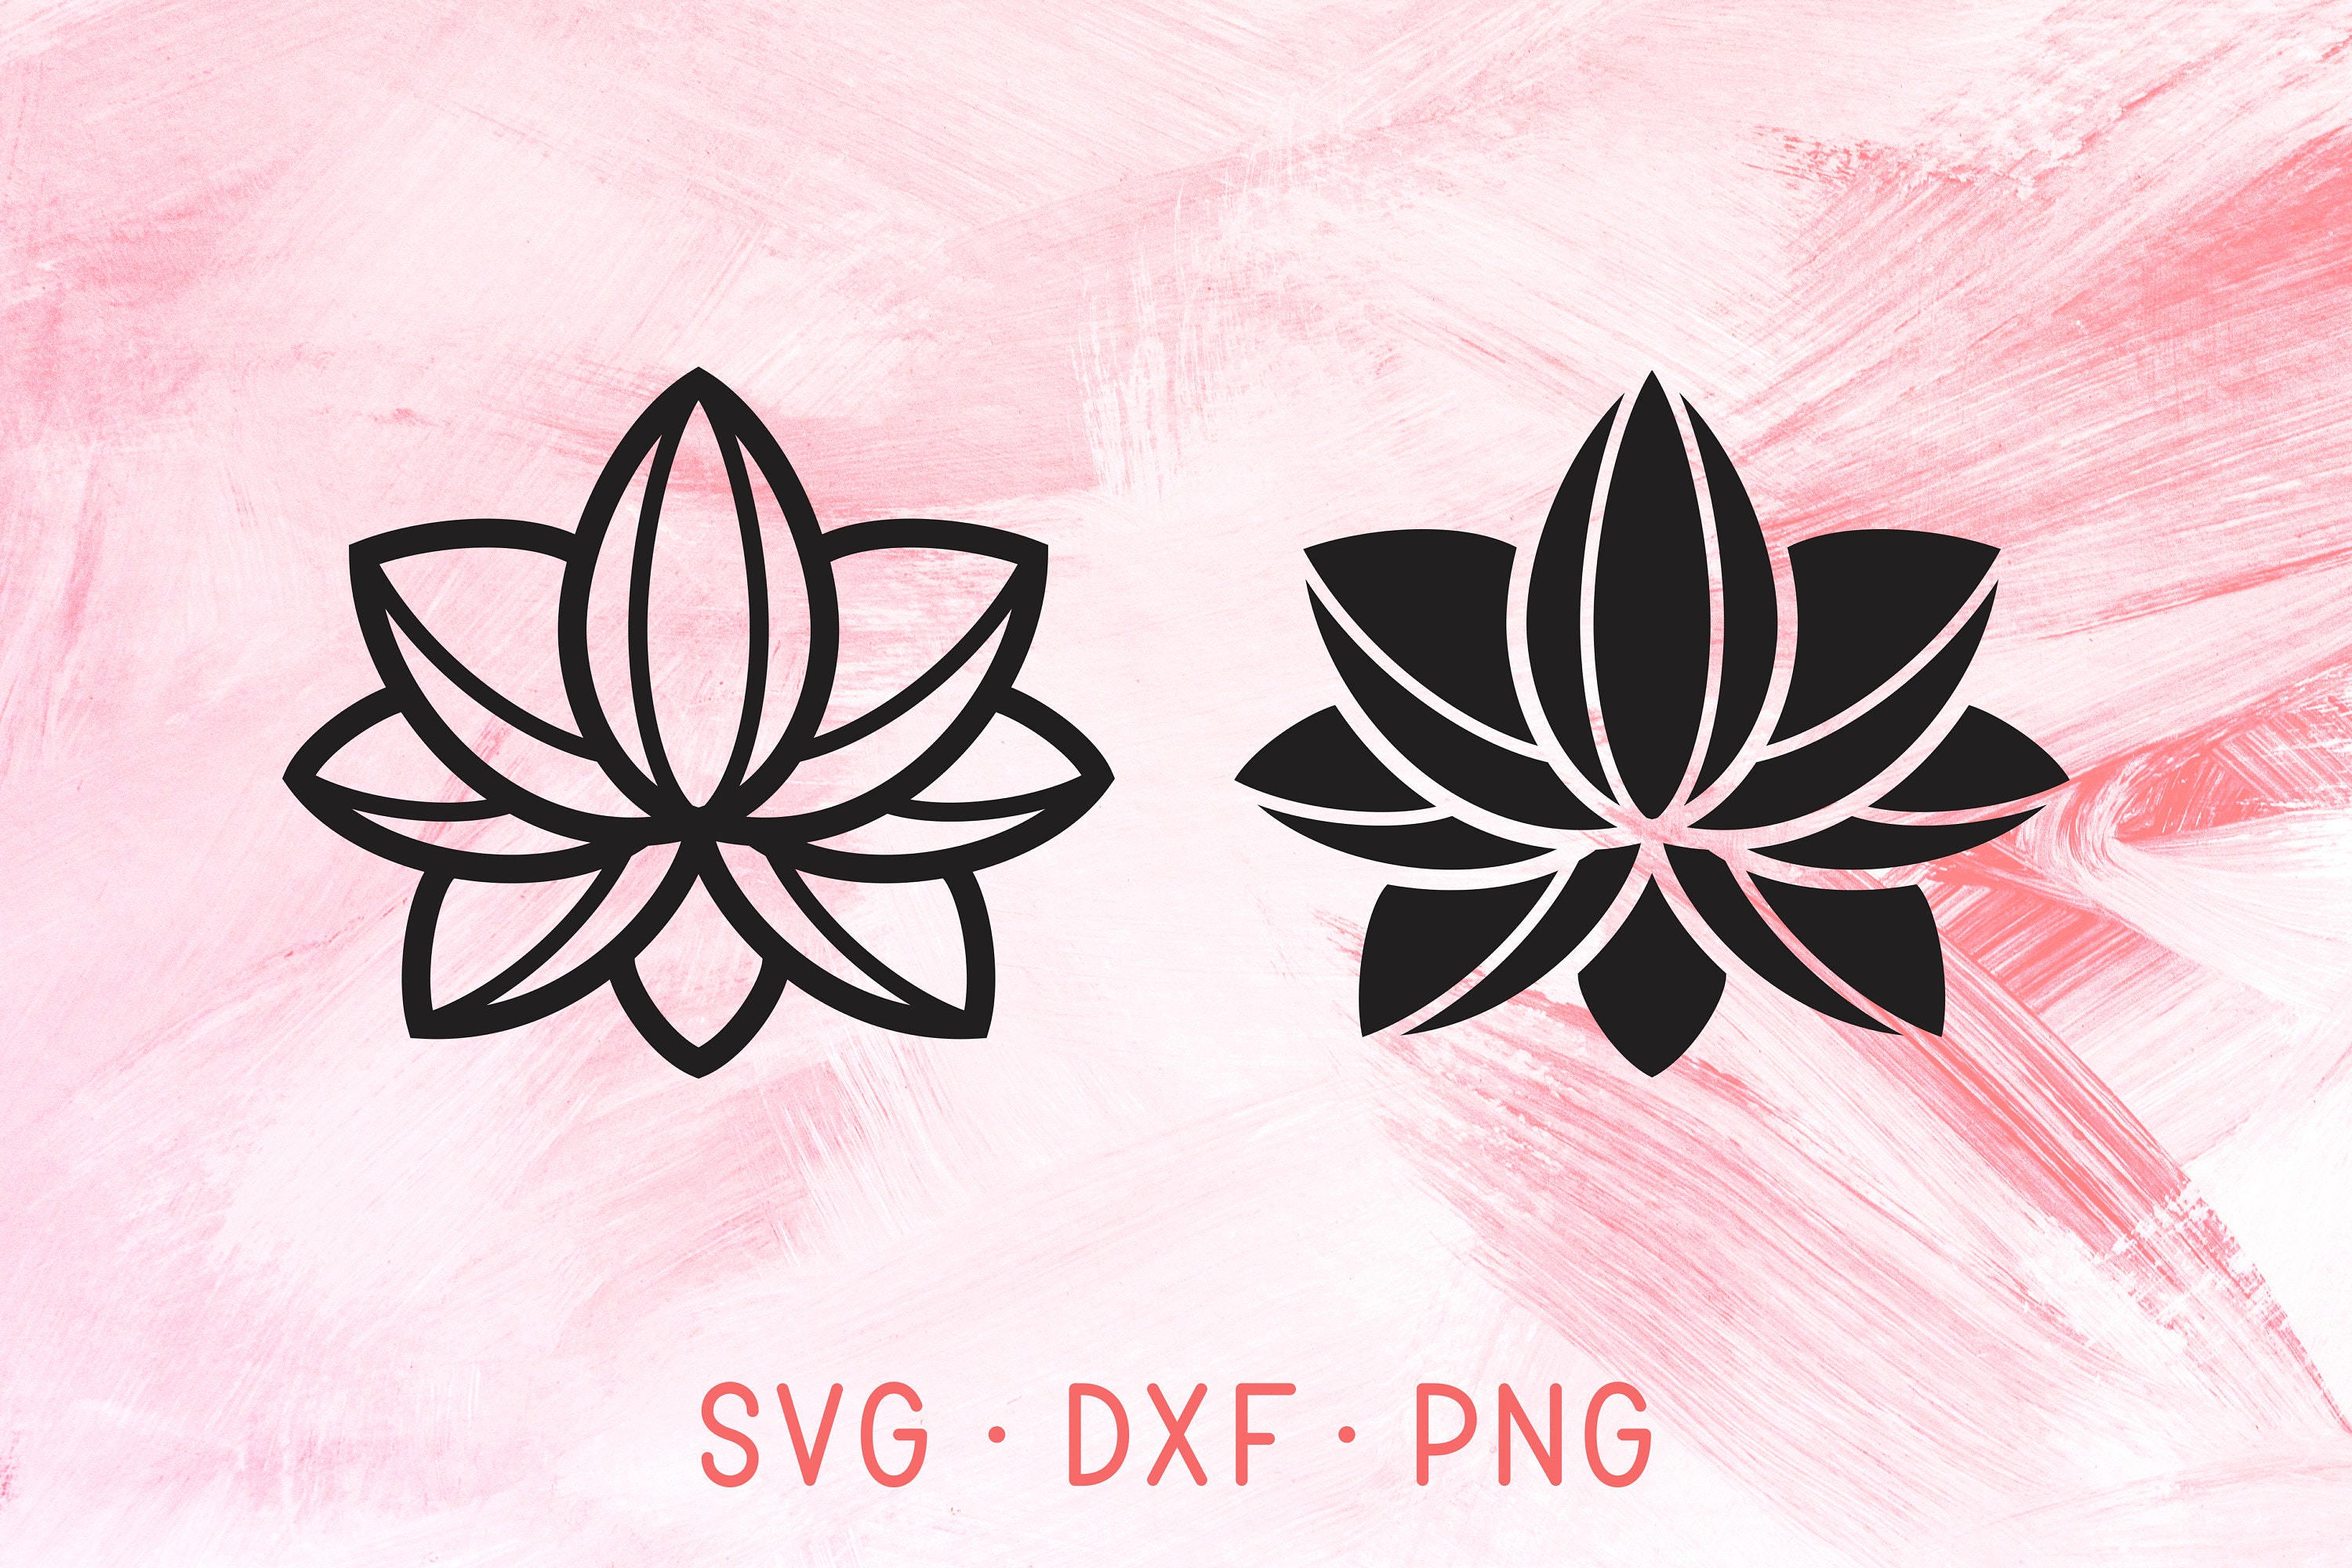 Lotus Flower Svg Dxf Png Files For Cricut Silhouette Two Etsy